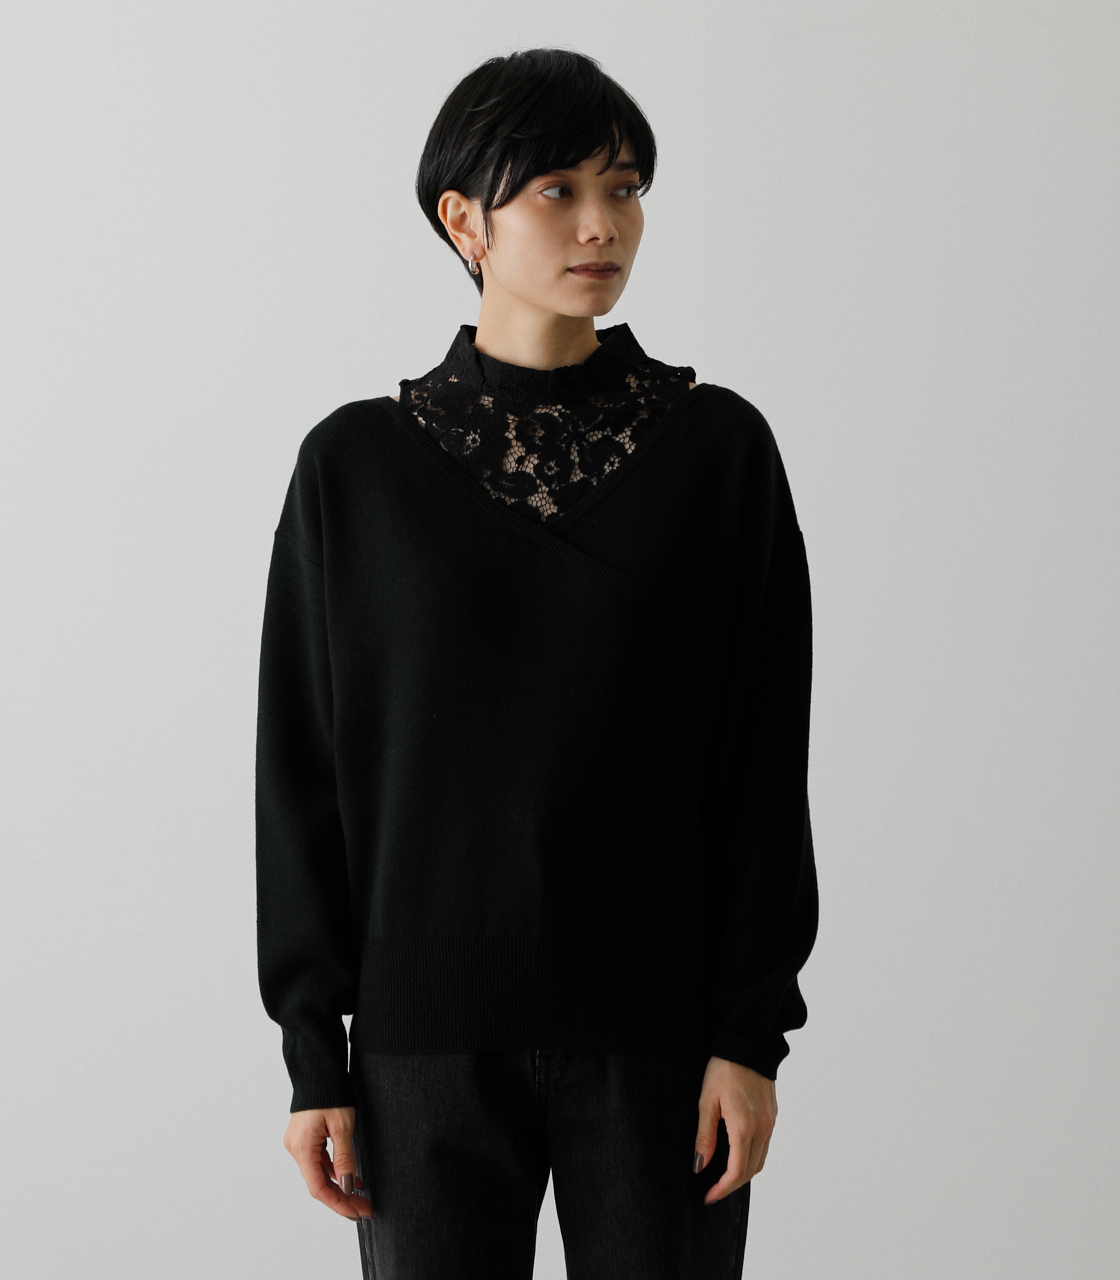 LACE DOCKING CACHE-COEUR TOPS/レースドッキングカシュクールトップス 詳細画像 BLK 5